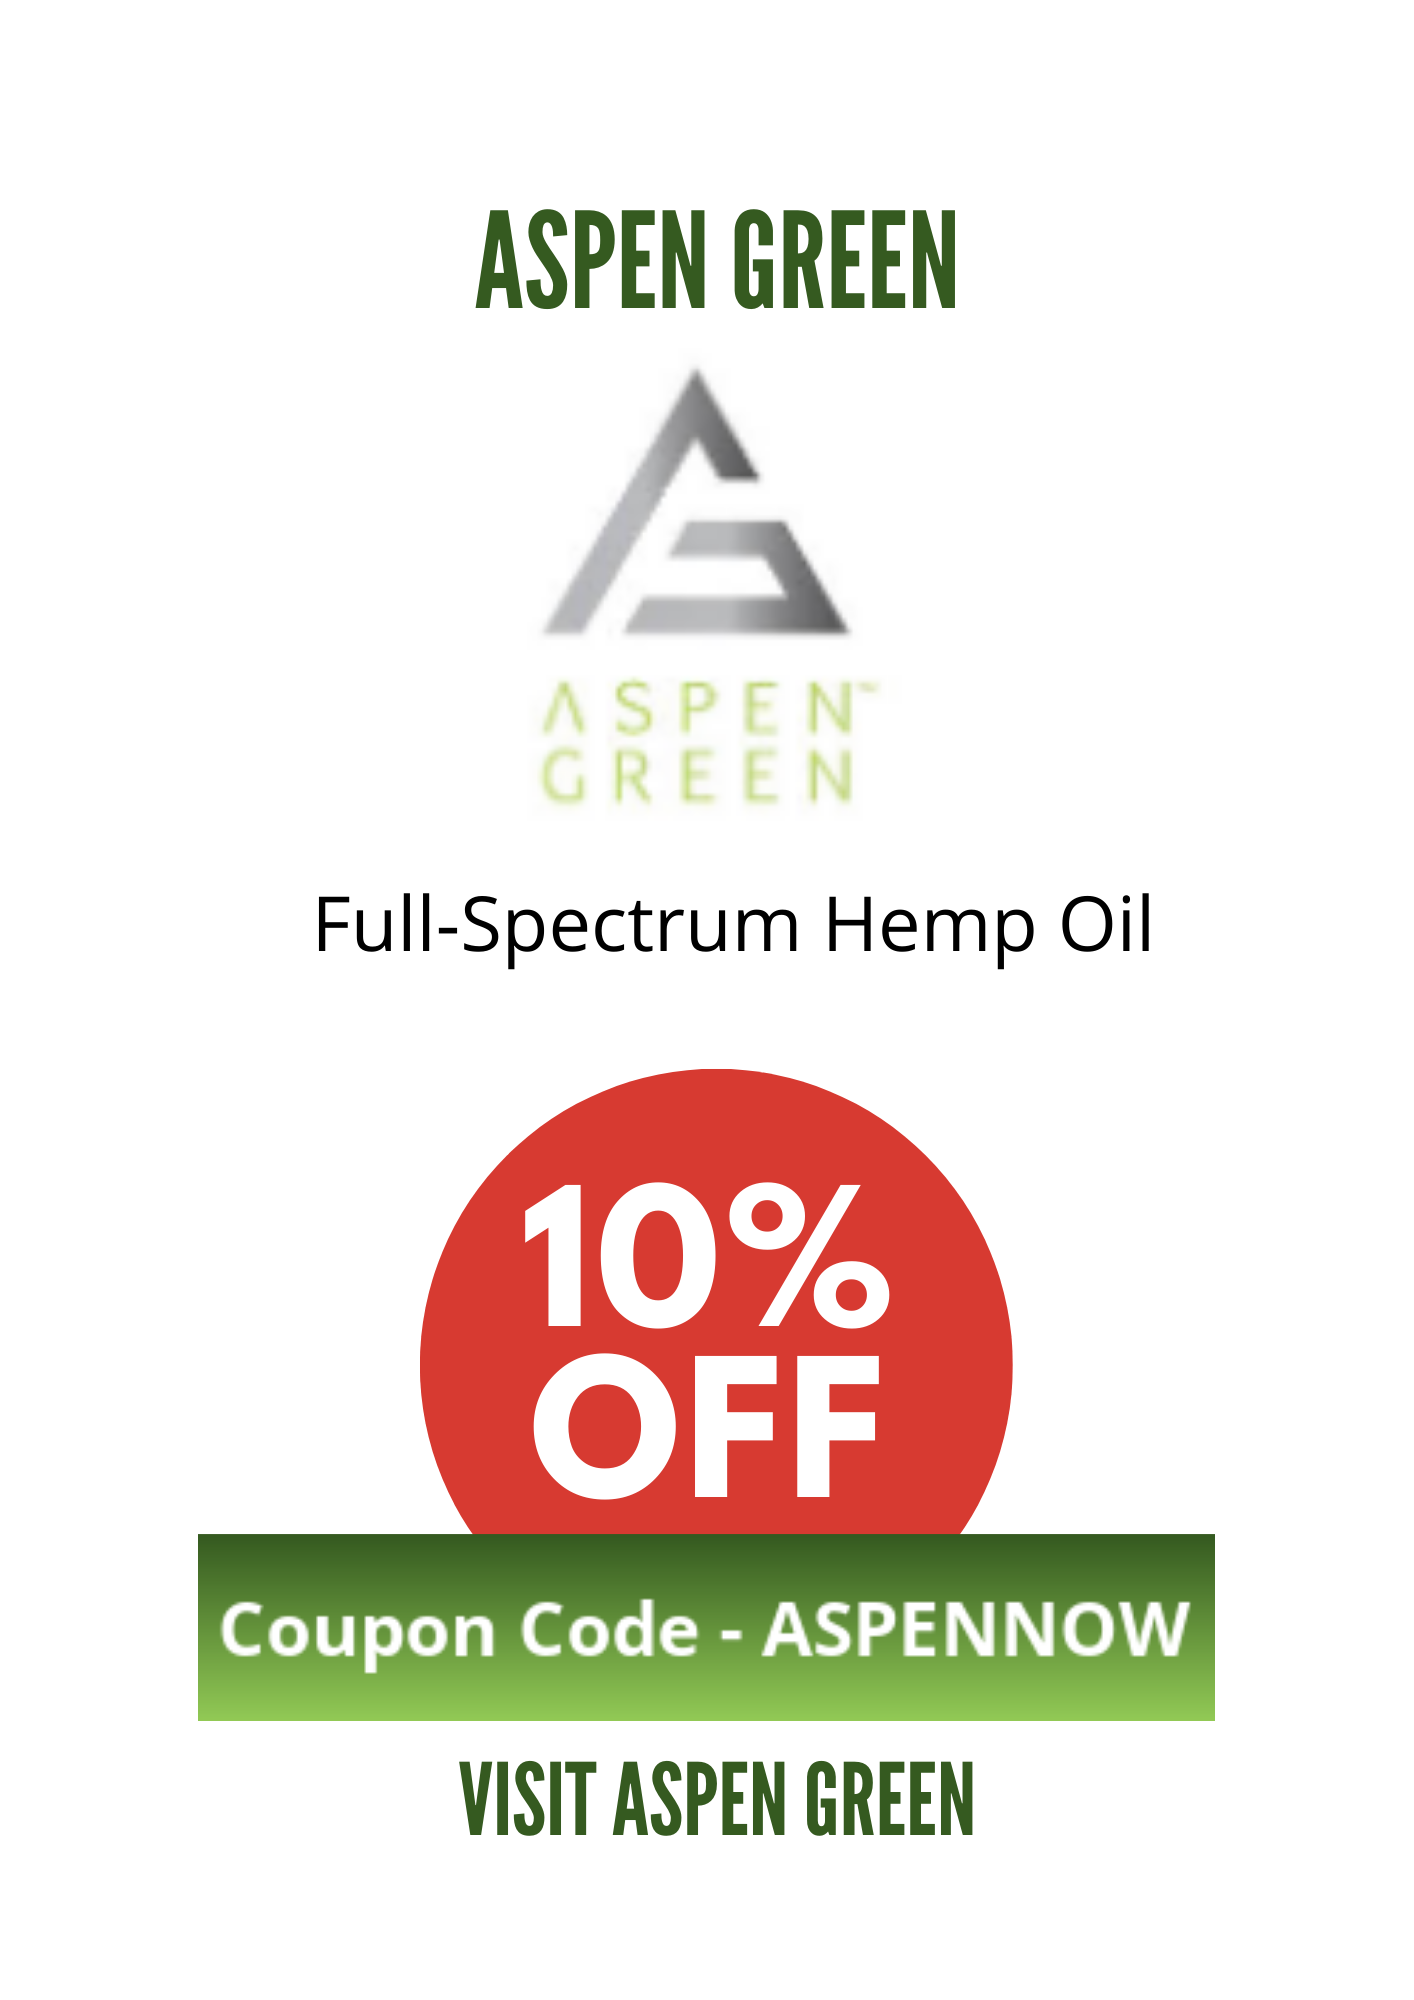 ASPEN GREEN COUPON